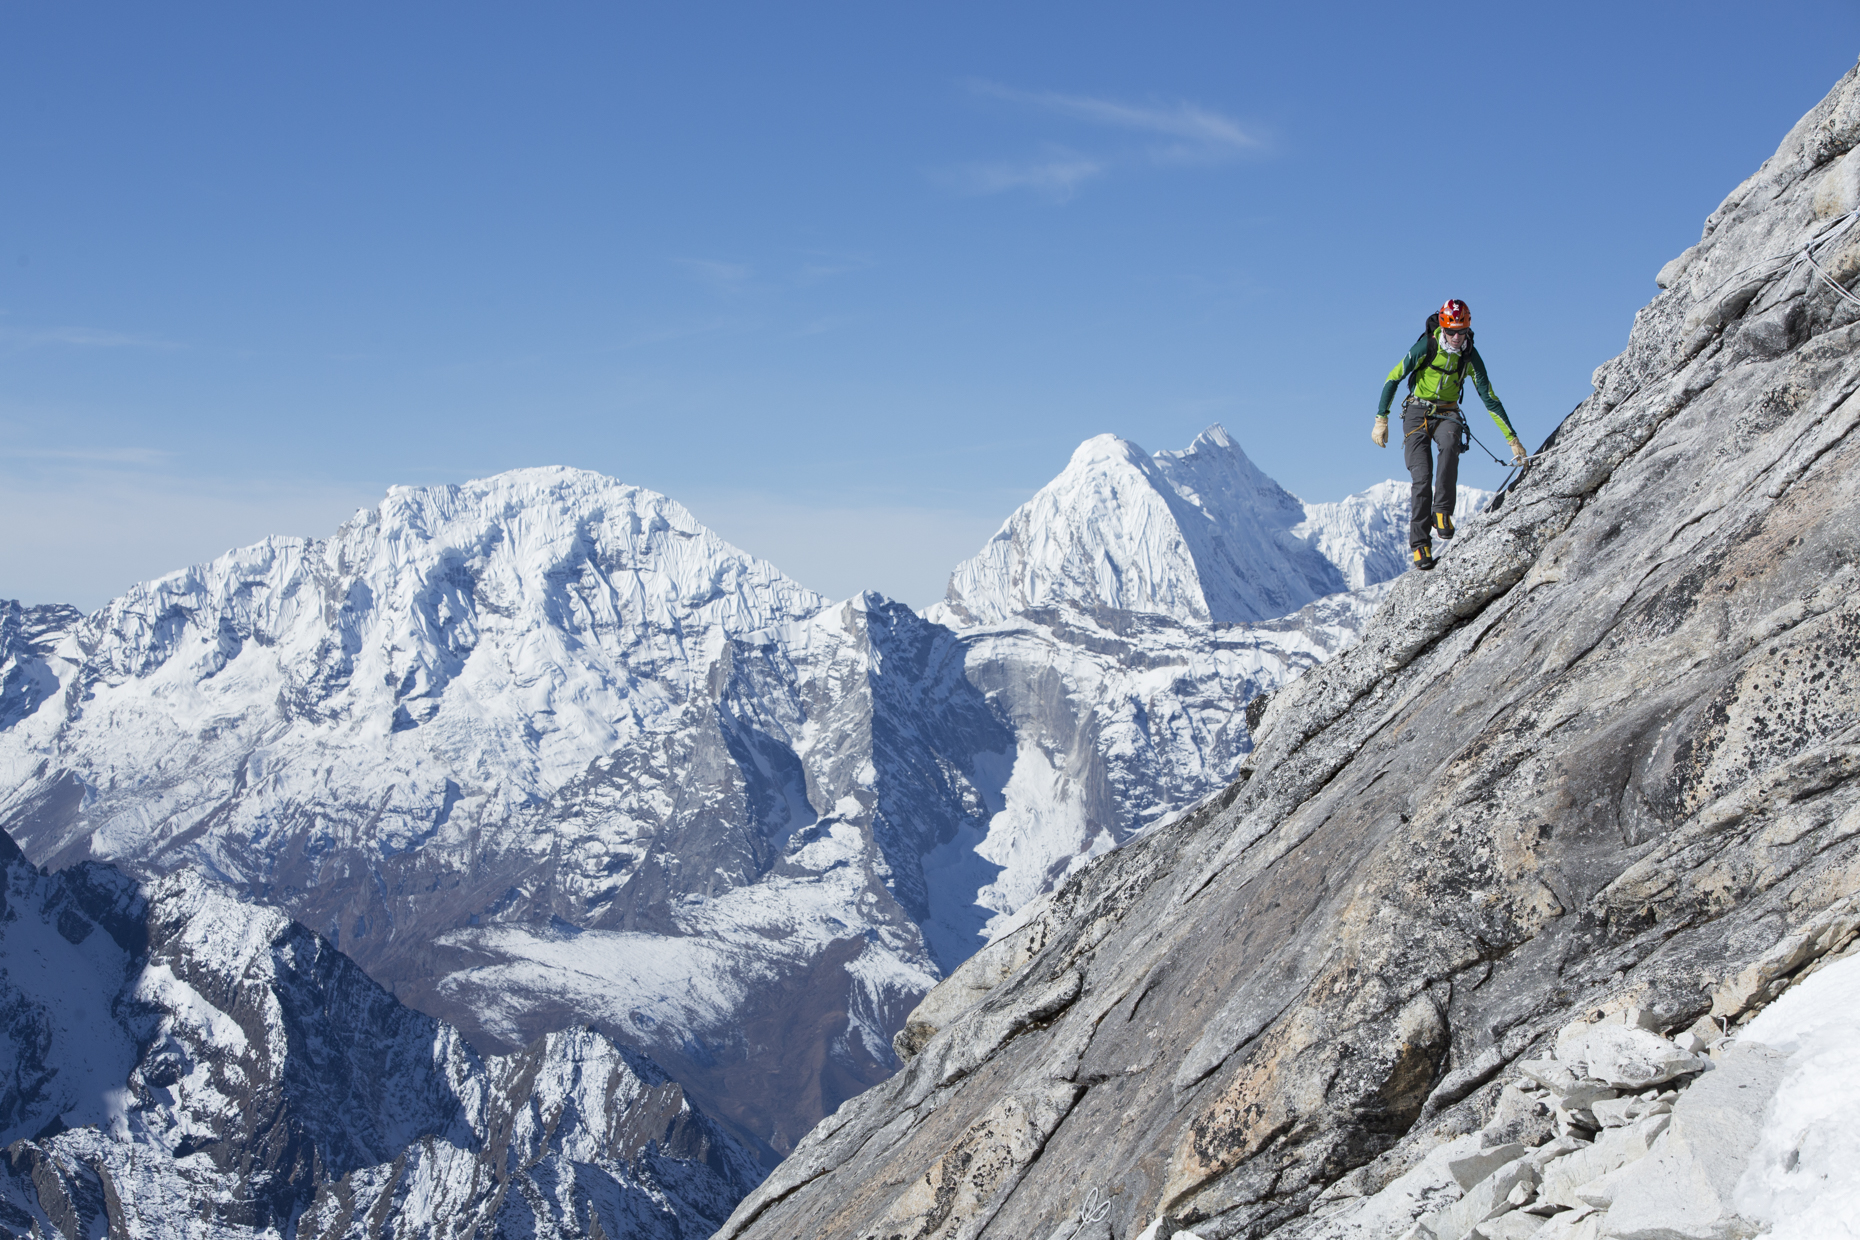 A Photo Journey to the Summit of Ama Dablam